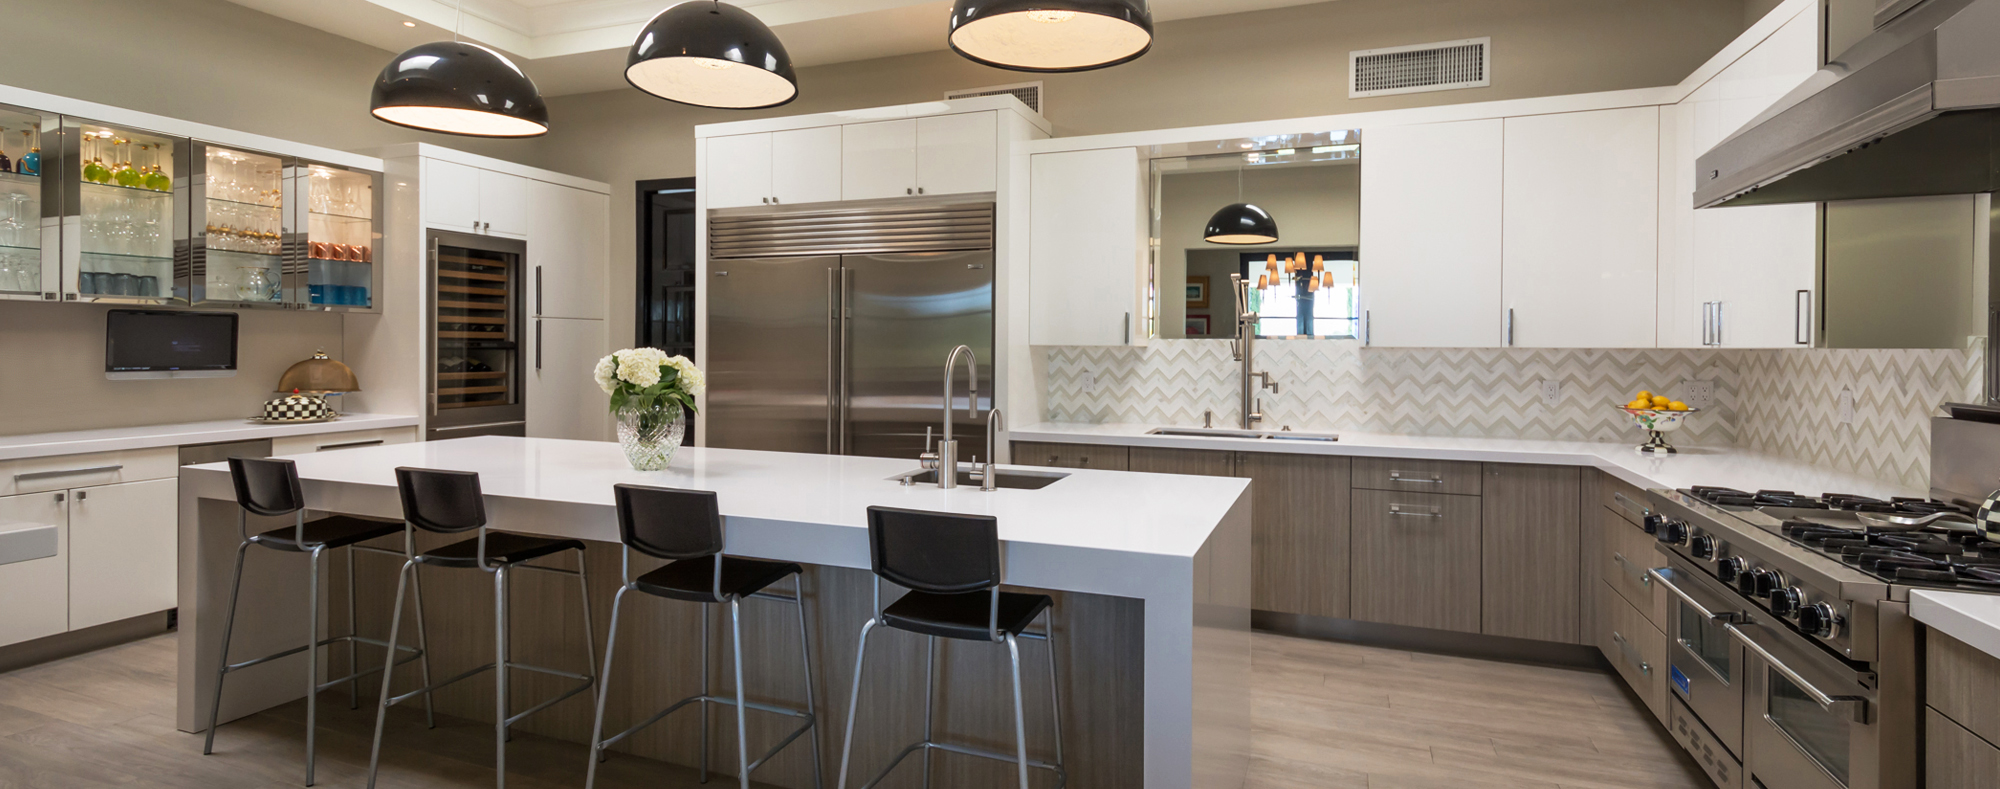 canyoncabinetry kitchen remodel tucson Home